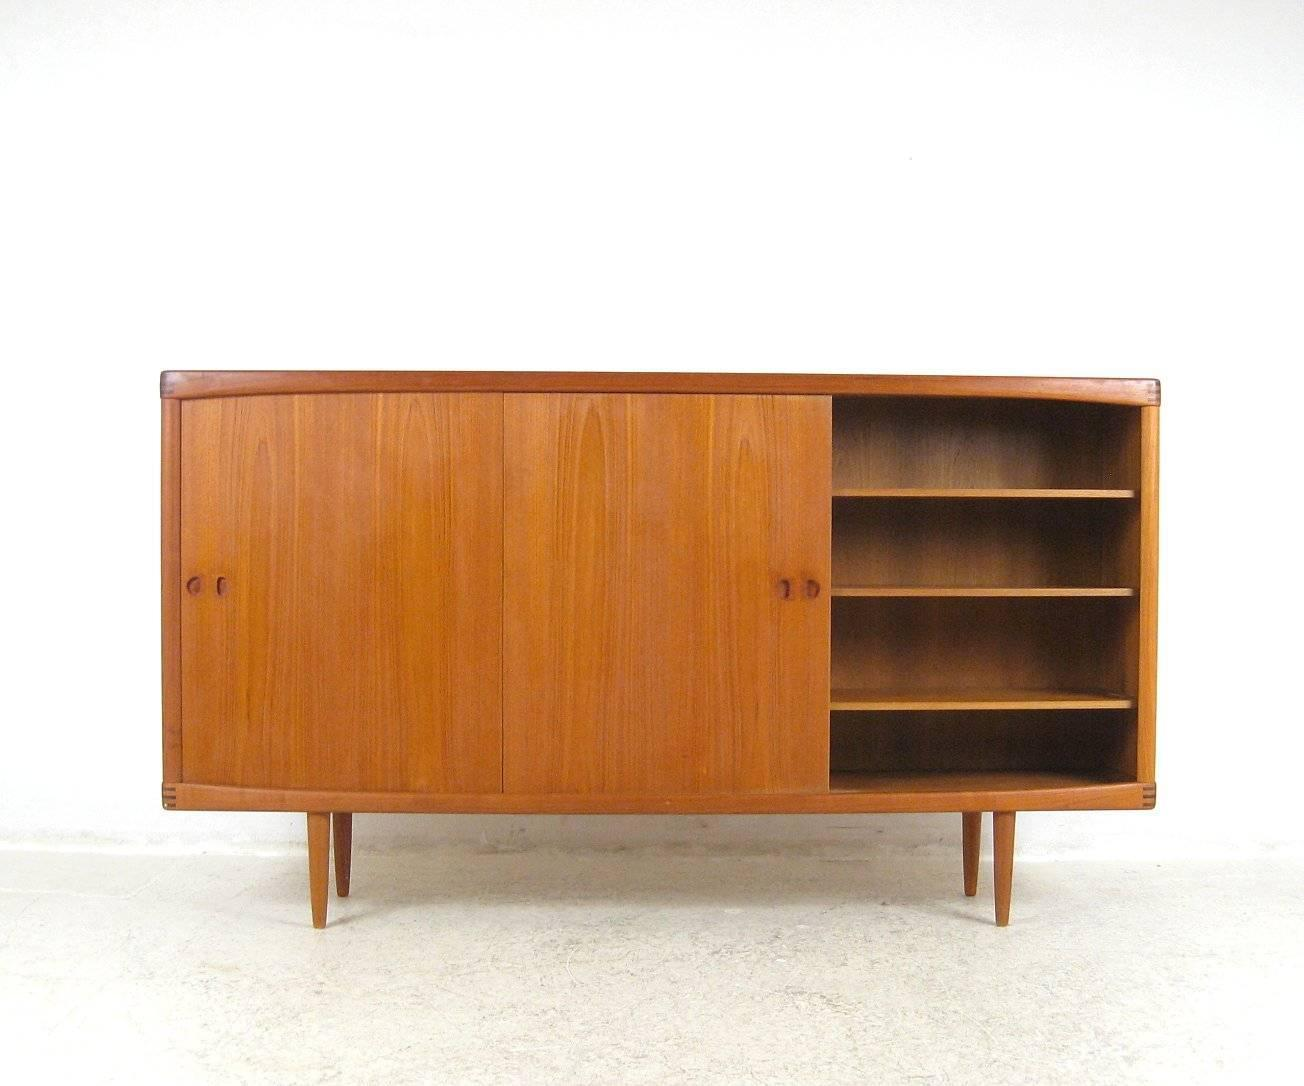 early 1970s large h w klein sideboard or credenza in teak for sale at 1stdibs. Black Bedroom Furniture Sets. Home Design Ideas